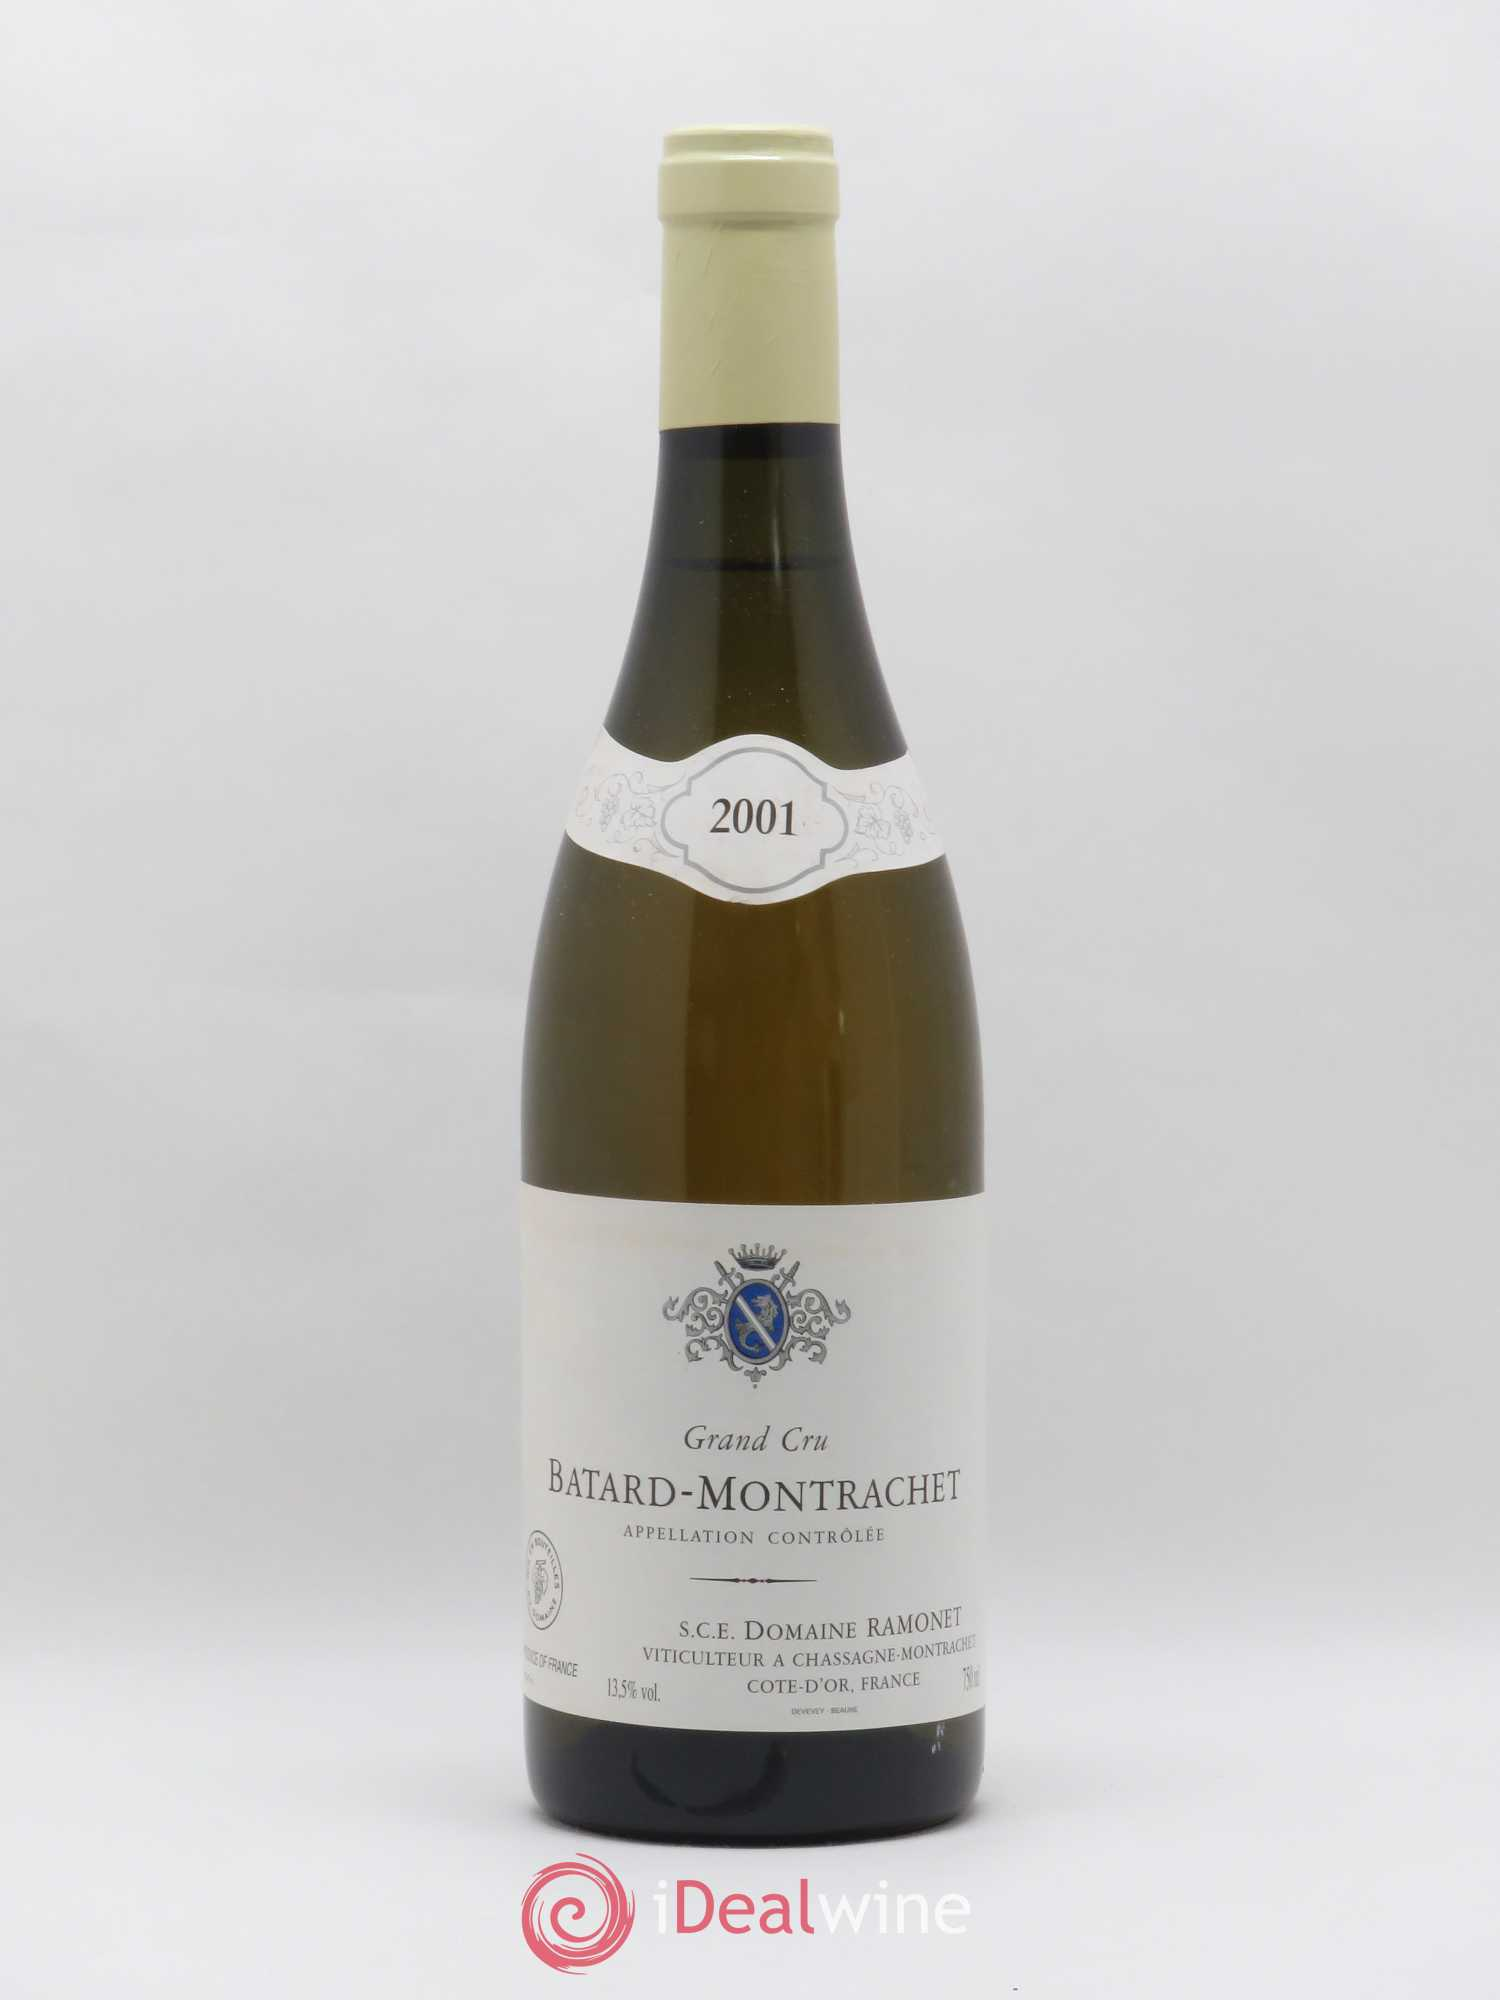 Buy Bâtard Montrachet Grand Cru Ramonet Domaine 2001 Lot 2088